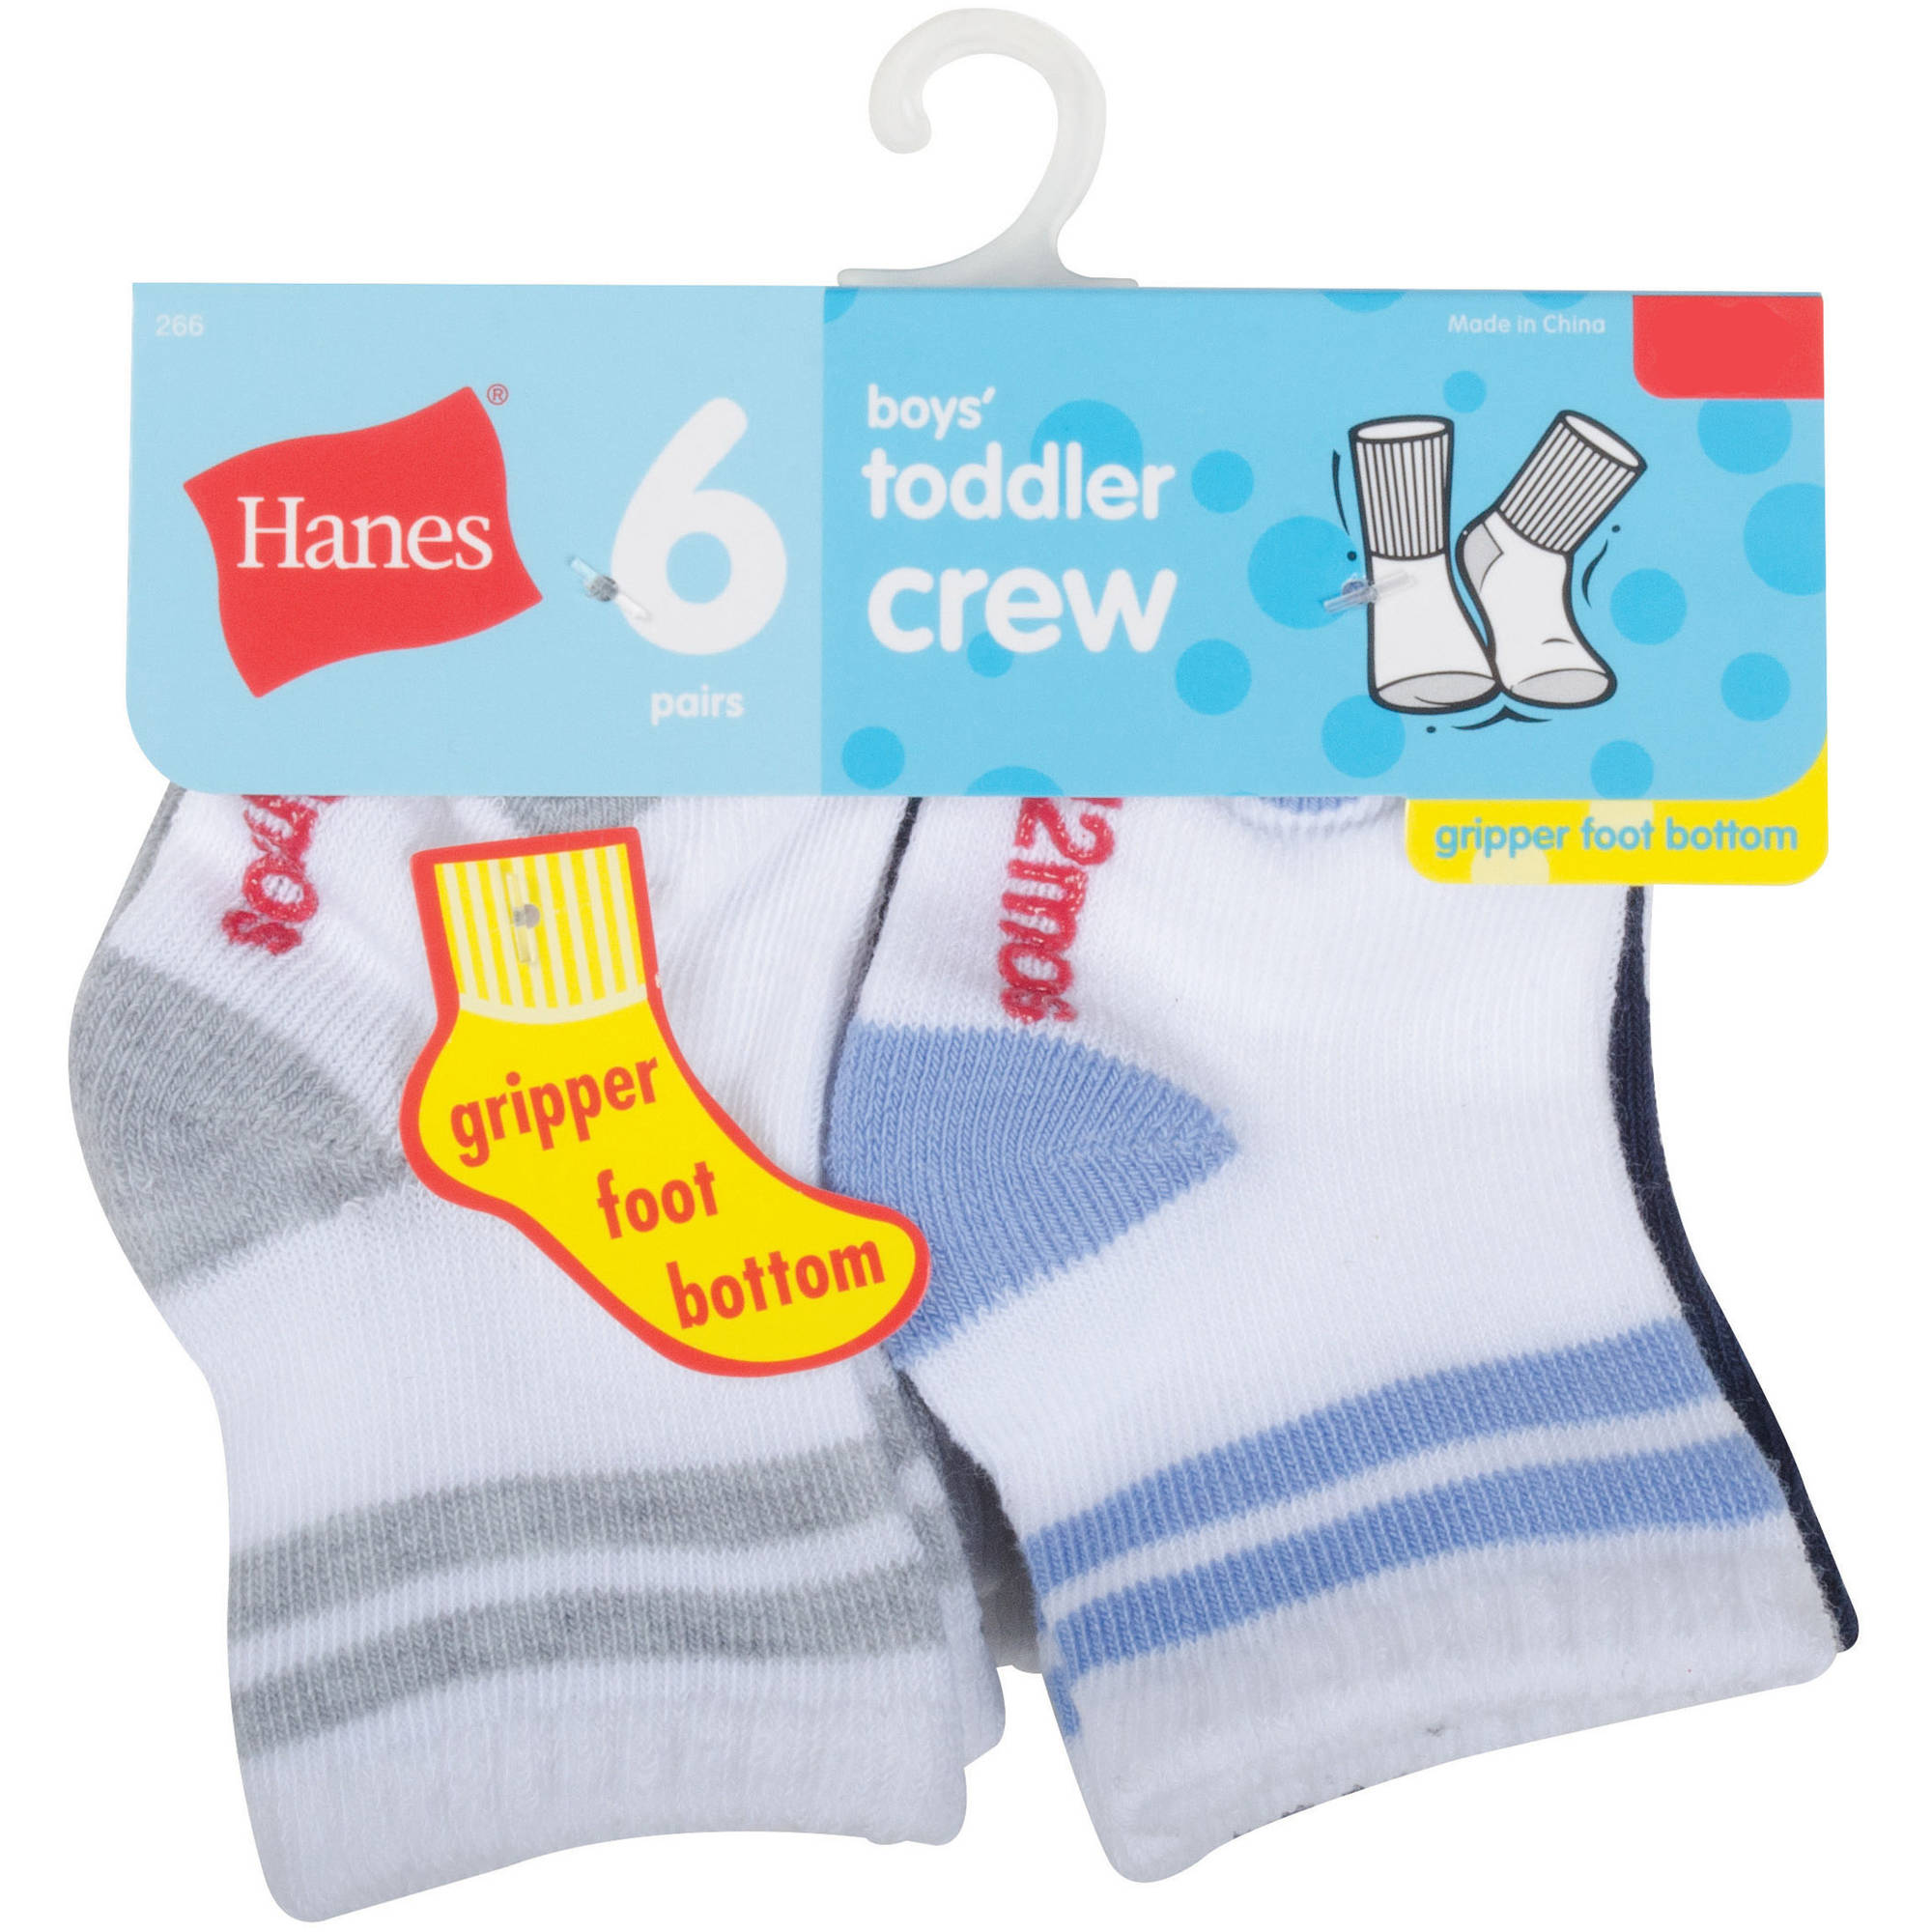 Hanes Baby Toddler Boy Cushion Heel and Toe Crew Socks - 6 Pair